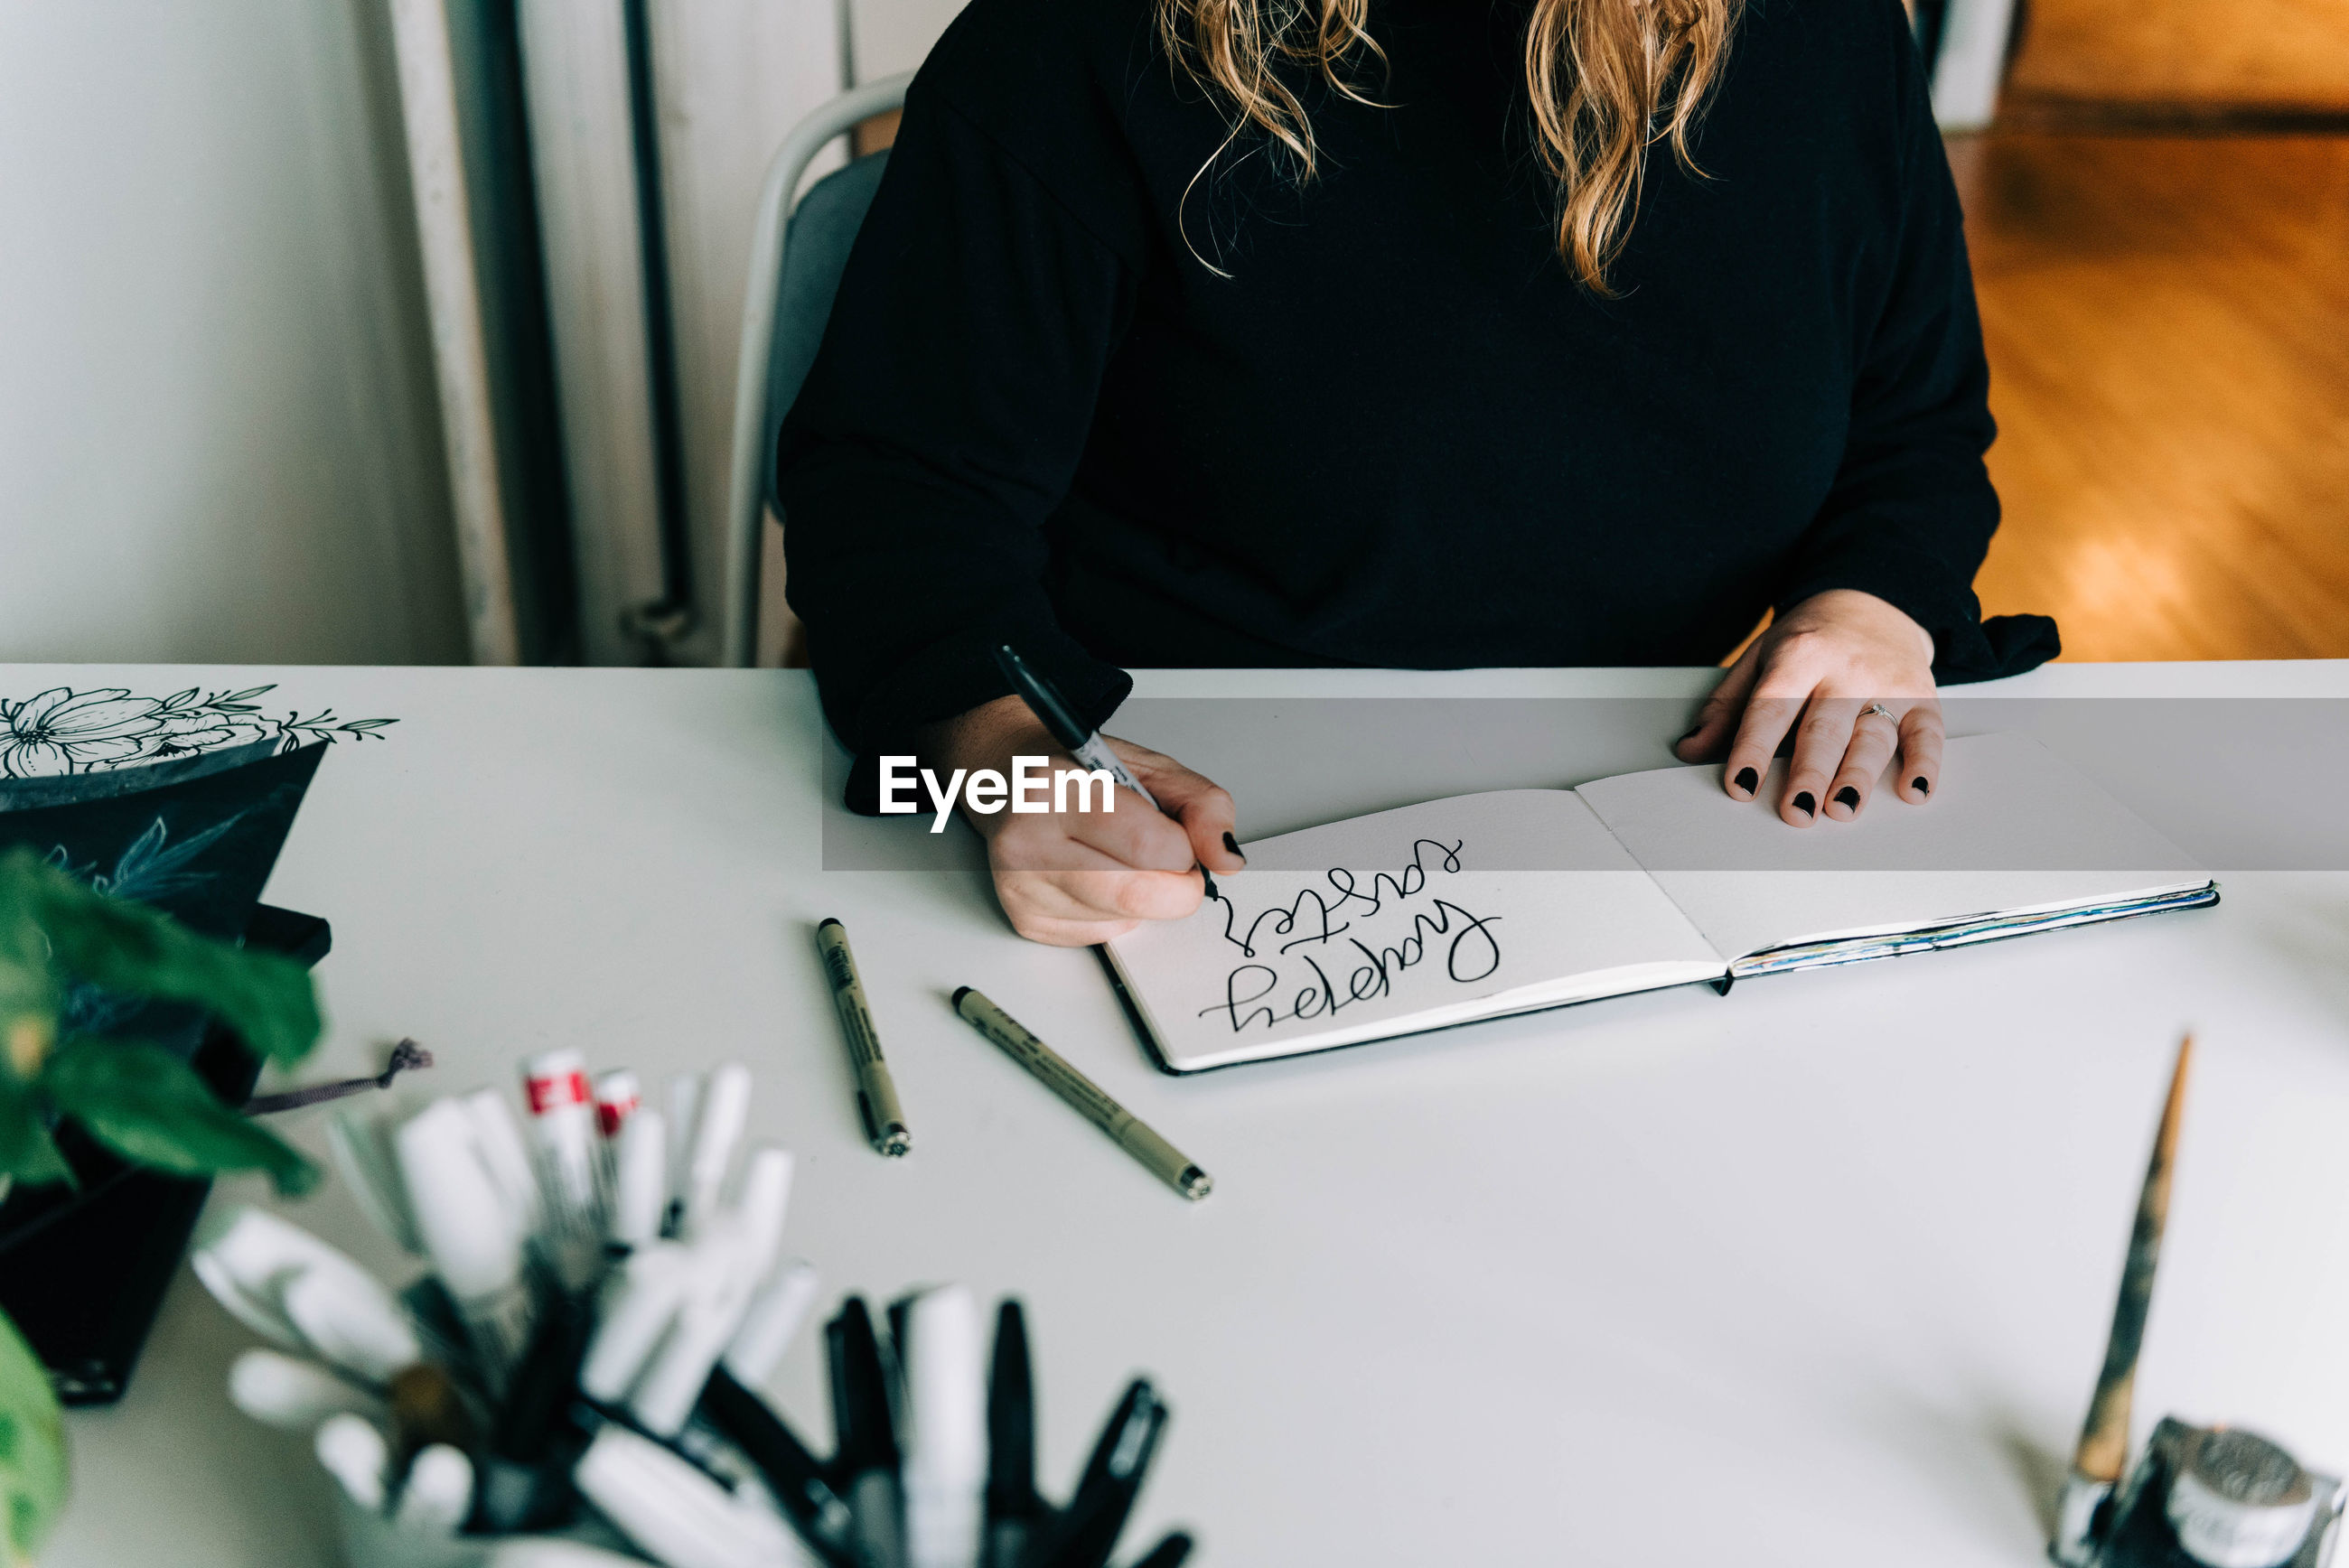 MIDSECTION OF WOMAN WITH TEXT ON TABLE